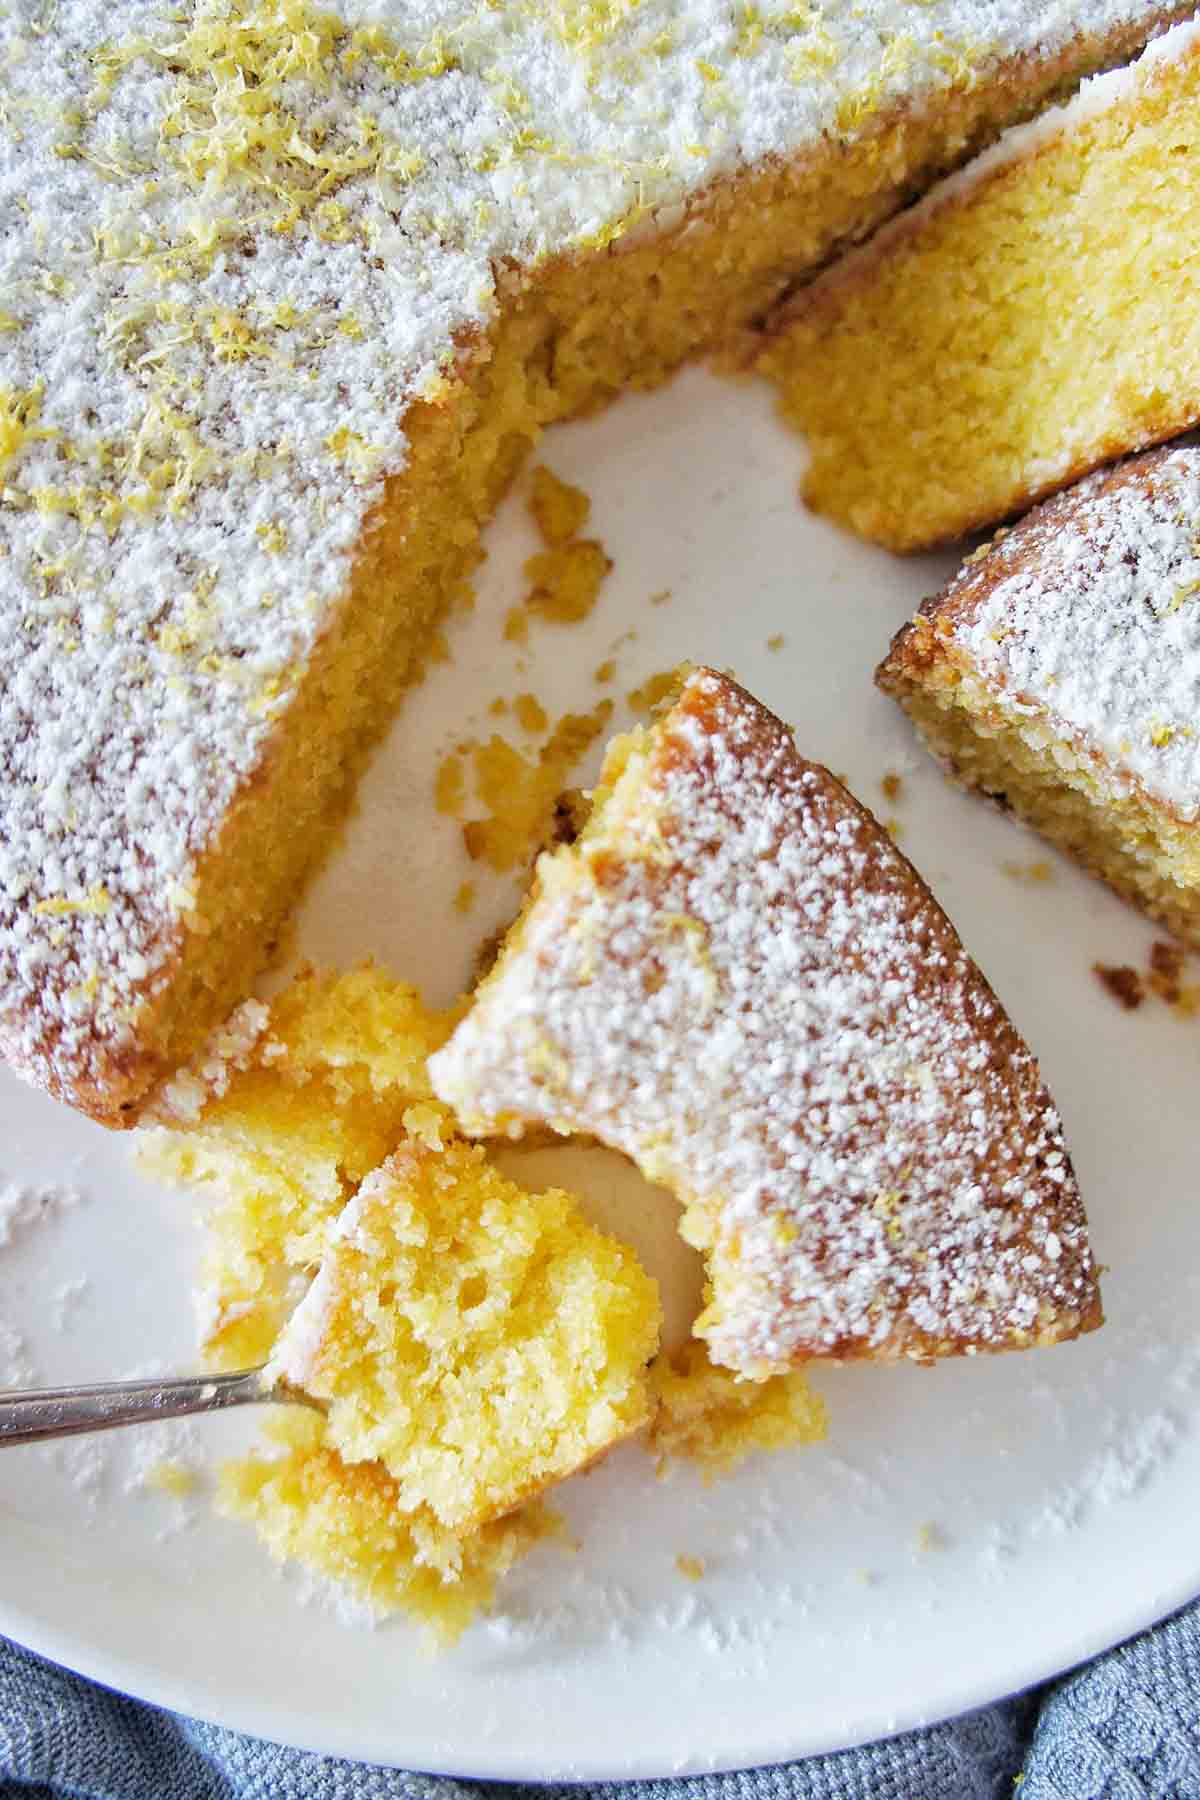 Teaspoon digging into slice of lemon polenta cake on a white plate